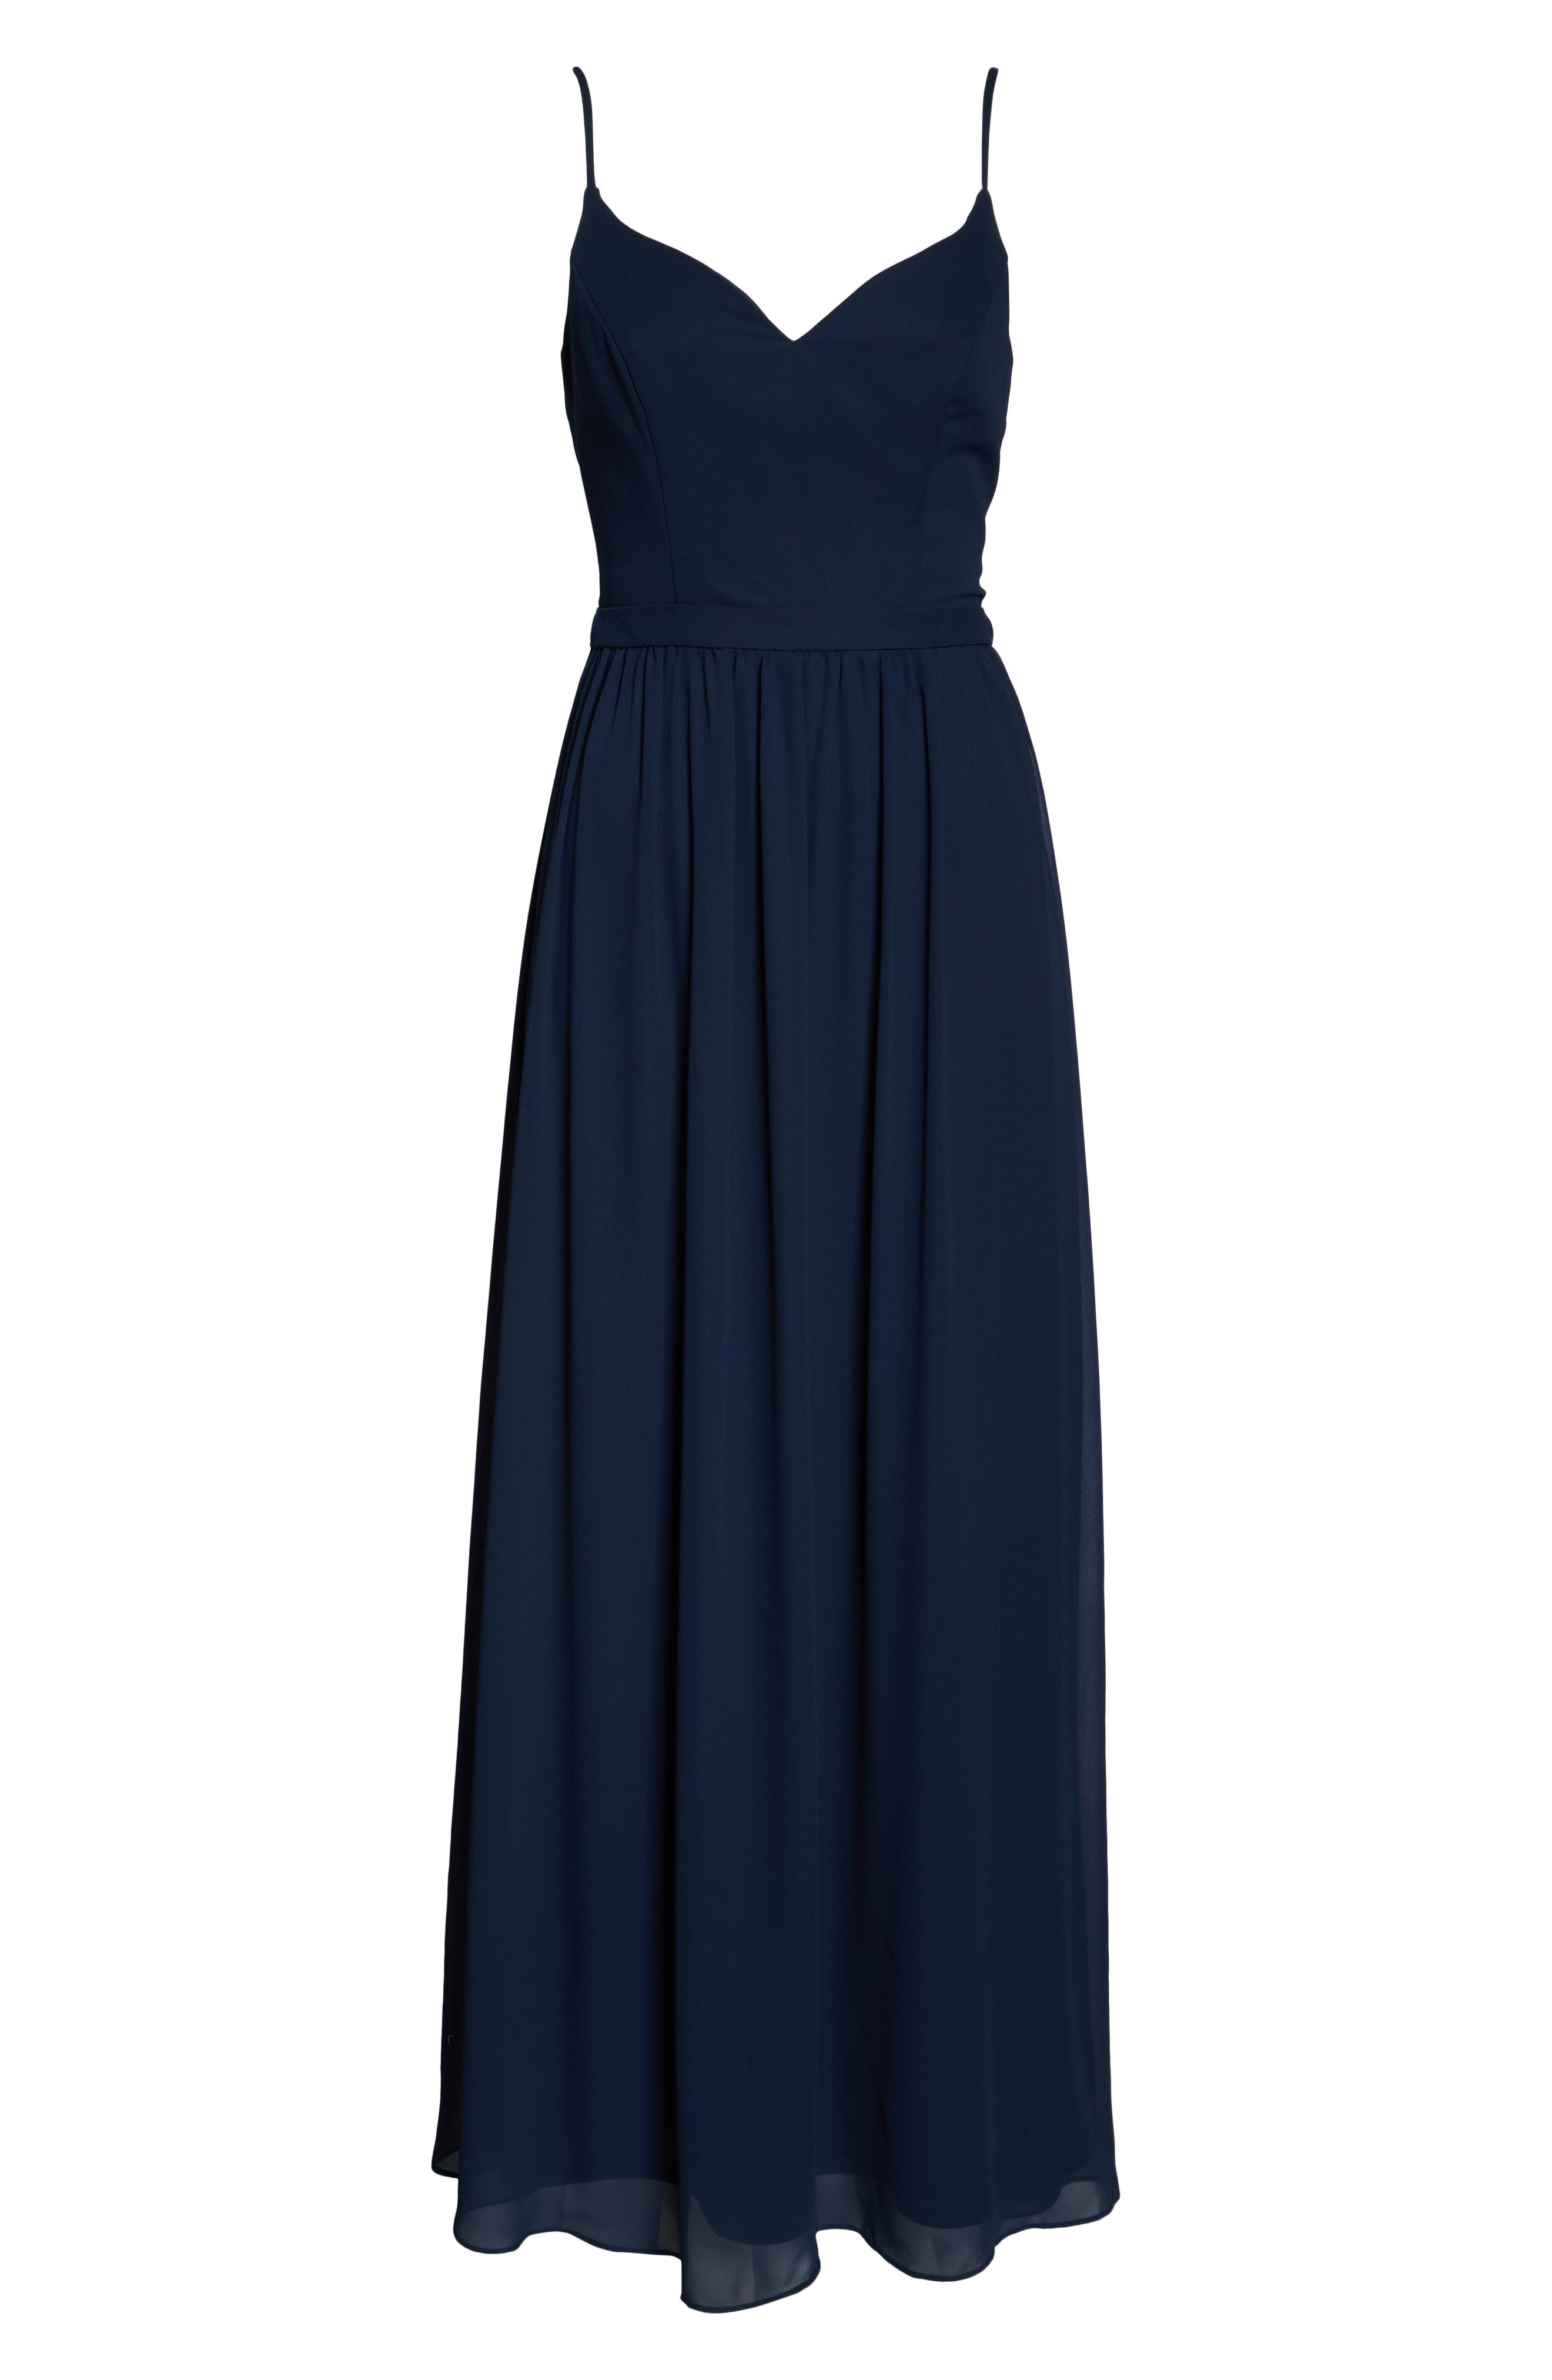 #LEVKOFF, Levkoff Chiffon Gown, Alternate thumbnail 3, color, NAVY